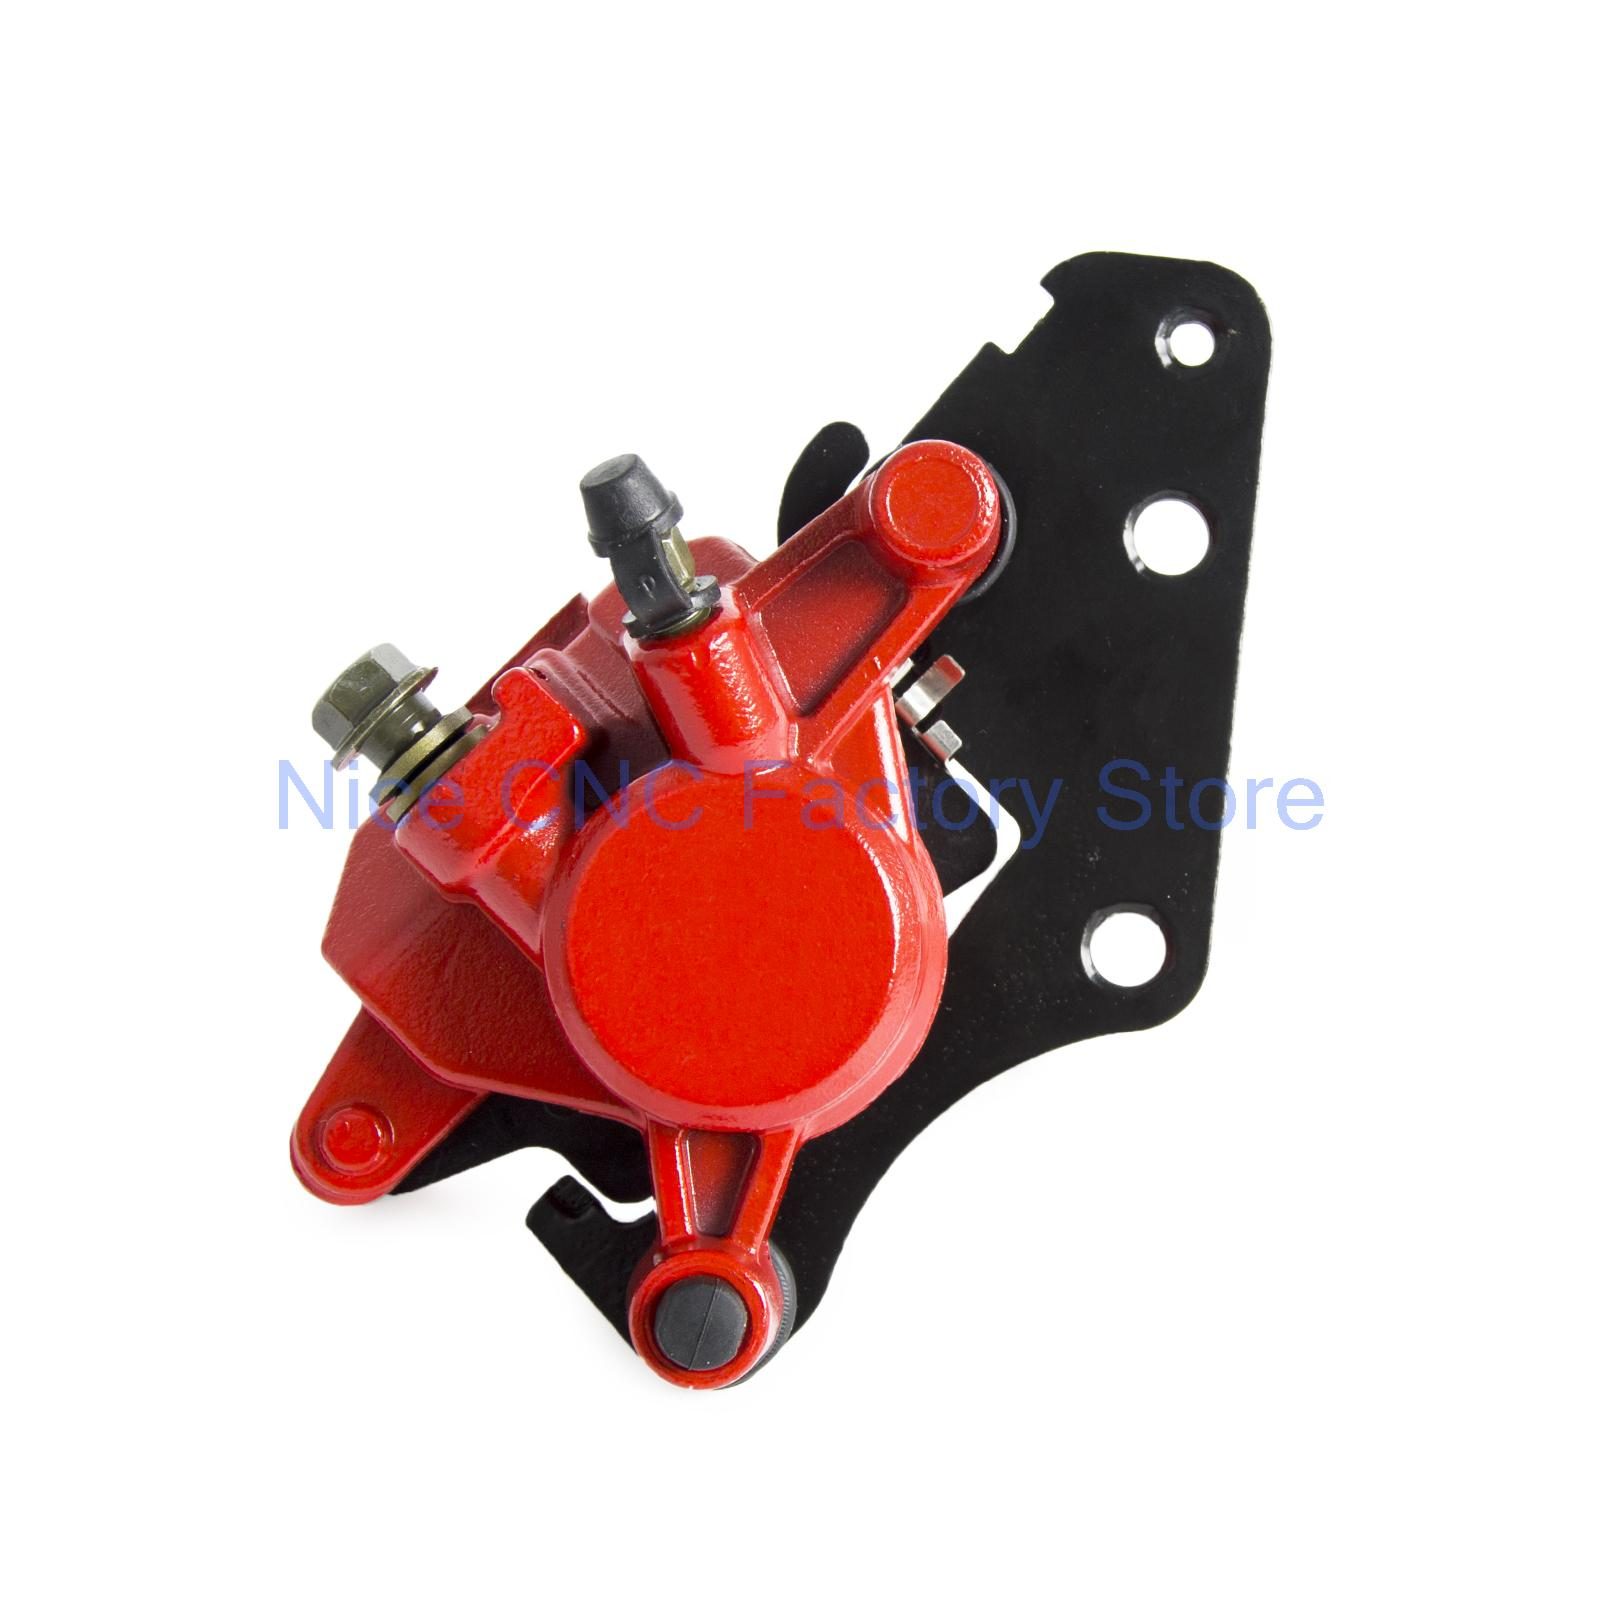 Brake Caliper Assy With Pads For Yamaha XC125E Axis Treet E53J 2009 - 2013 210 2011 2012 Number: 32P-F580U-11-00 brake caliper assy with pads for yamaha xc125e axis treet e53j 2009 2013 210 2011 2012 number 32p f580u 11 00